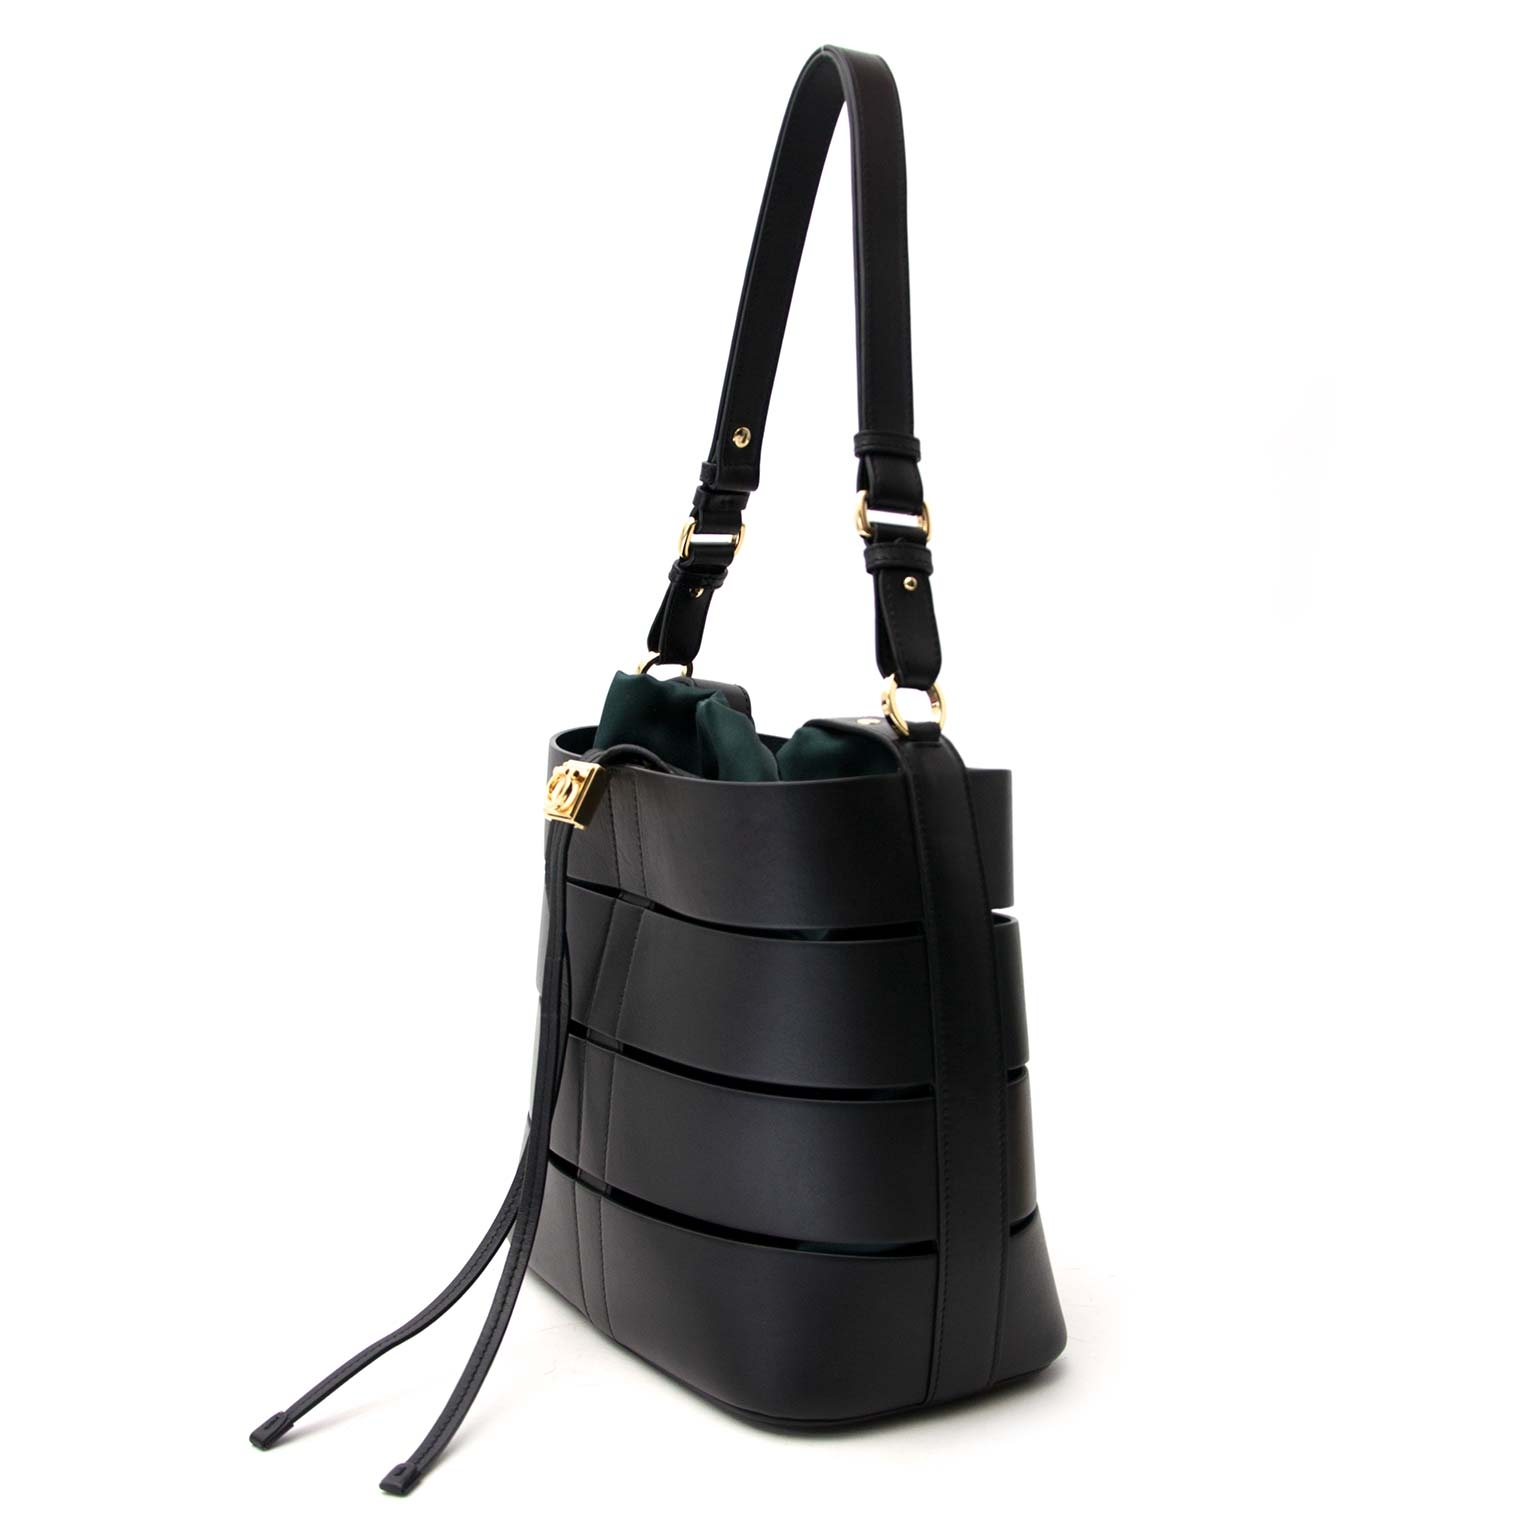 Salvatore Ferragamo Sansy Cutout Leather Bucket Bag Buy authentic designer Salvatore Ferregamo secondhand bags at Labellov at the best price. Safe and secure shopping. Koop tweedehands authentieke Salvatore Ferregamo tassen bij designer webwinkel labellov